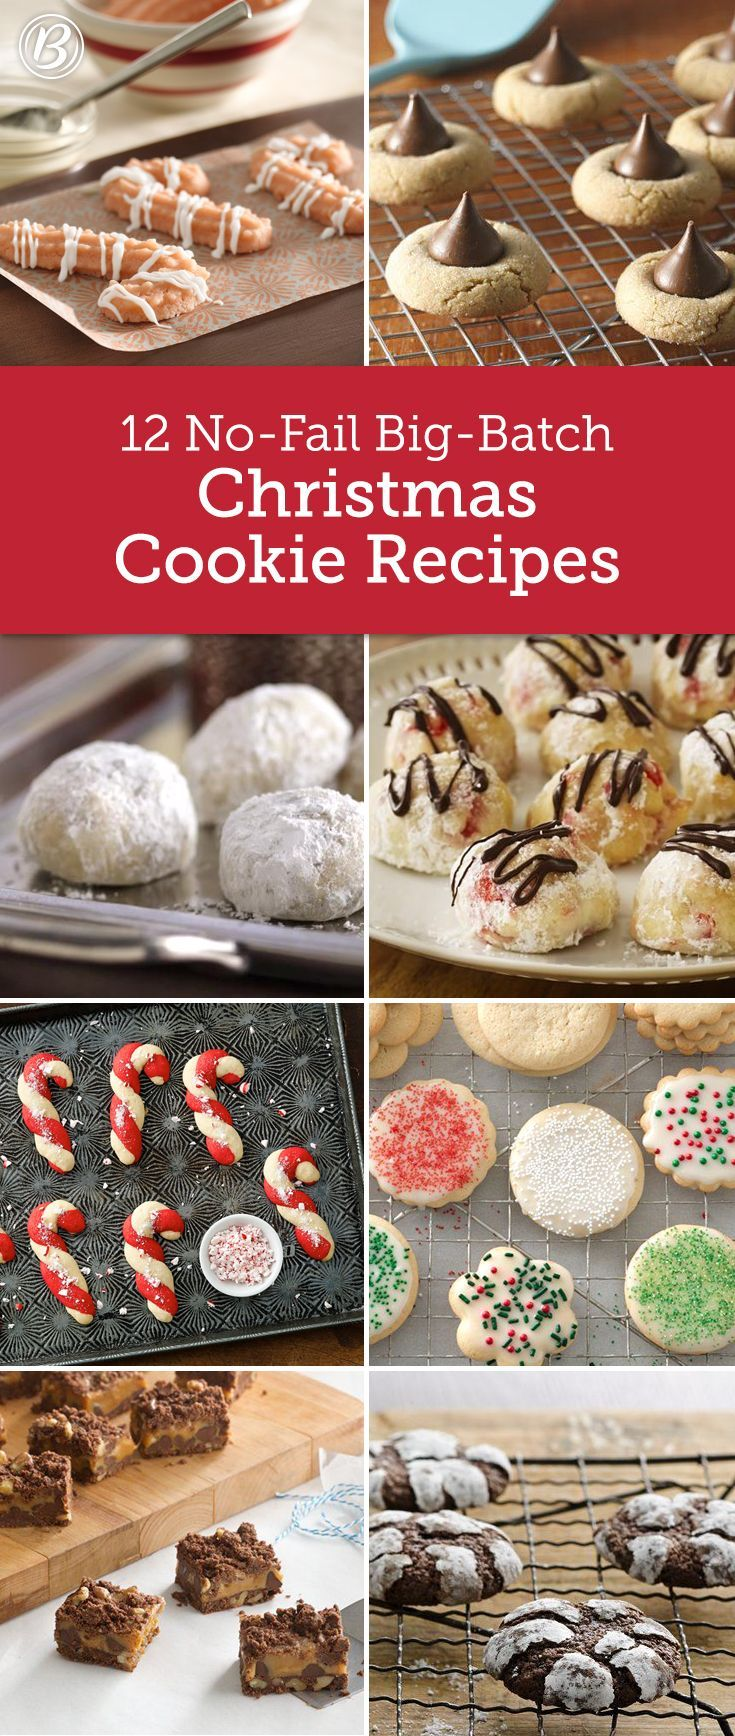 Making Christmas cookies for a crowd, or hosting a holiday cookie exchange? These easy, big-batch recipes mean more cookies and less work!